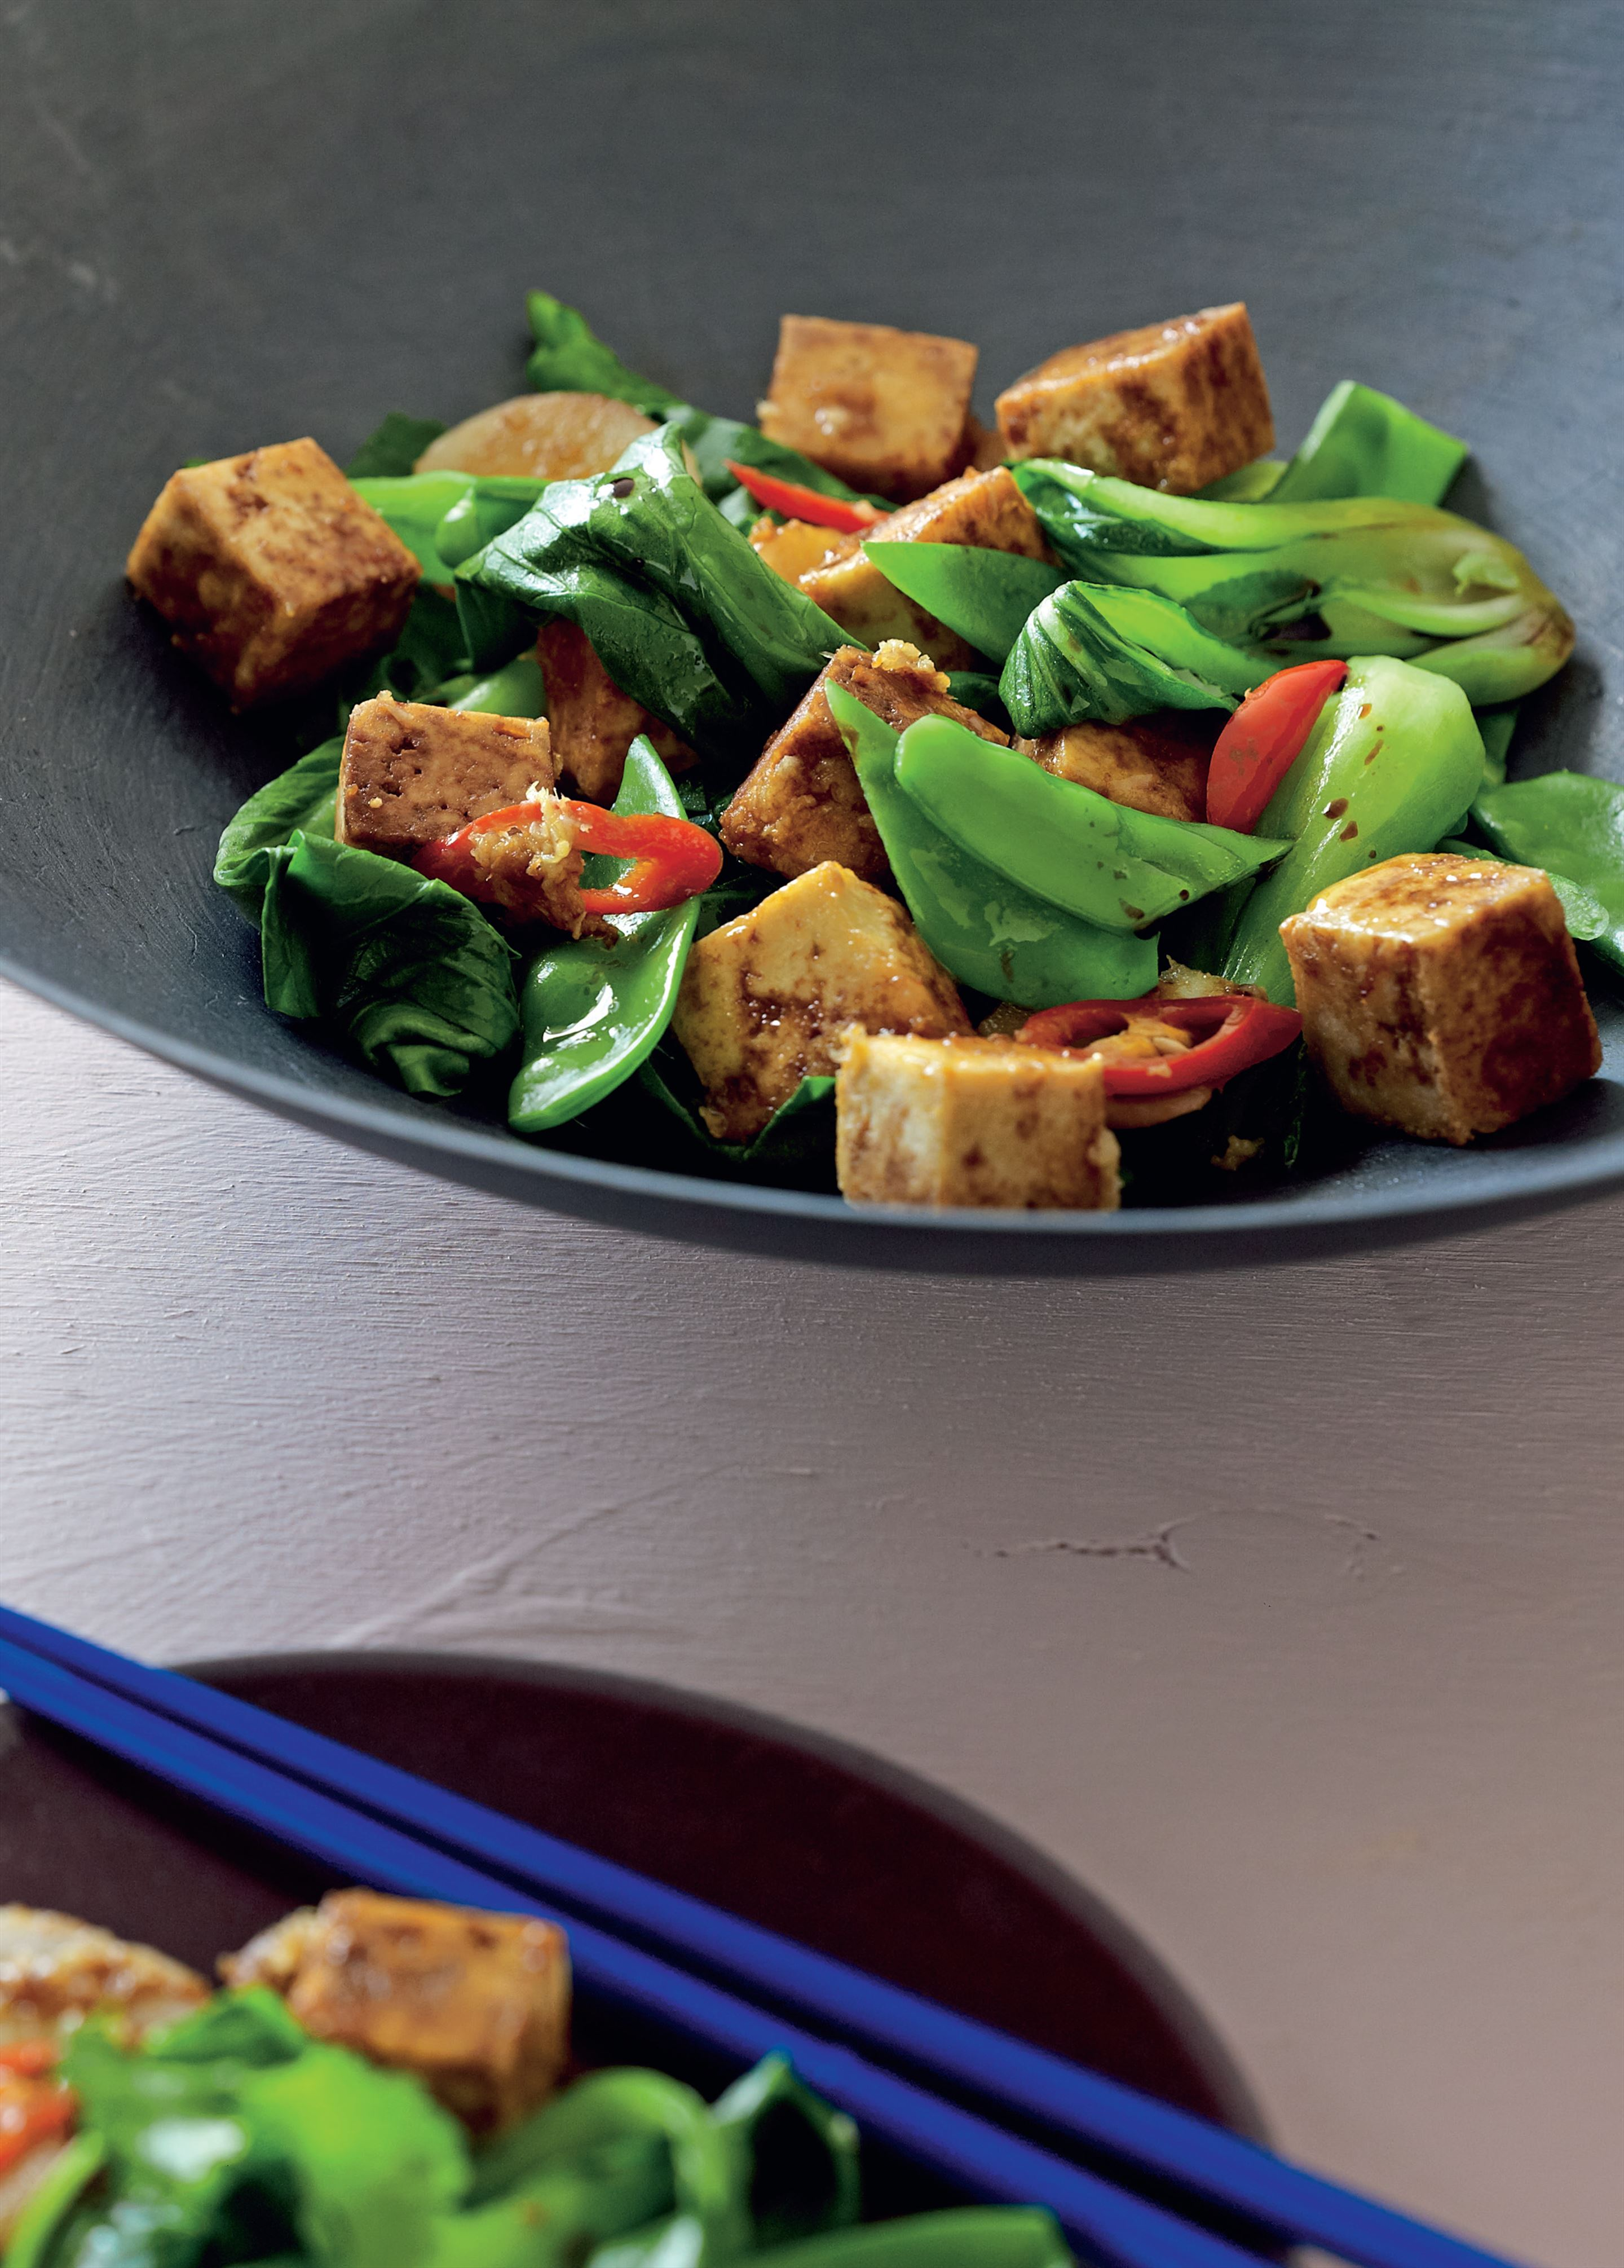 Stir-fried tofu with Asian greens